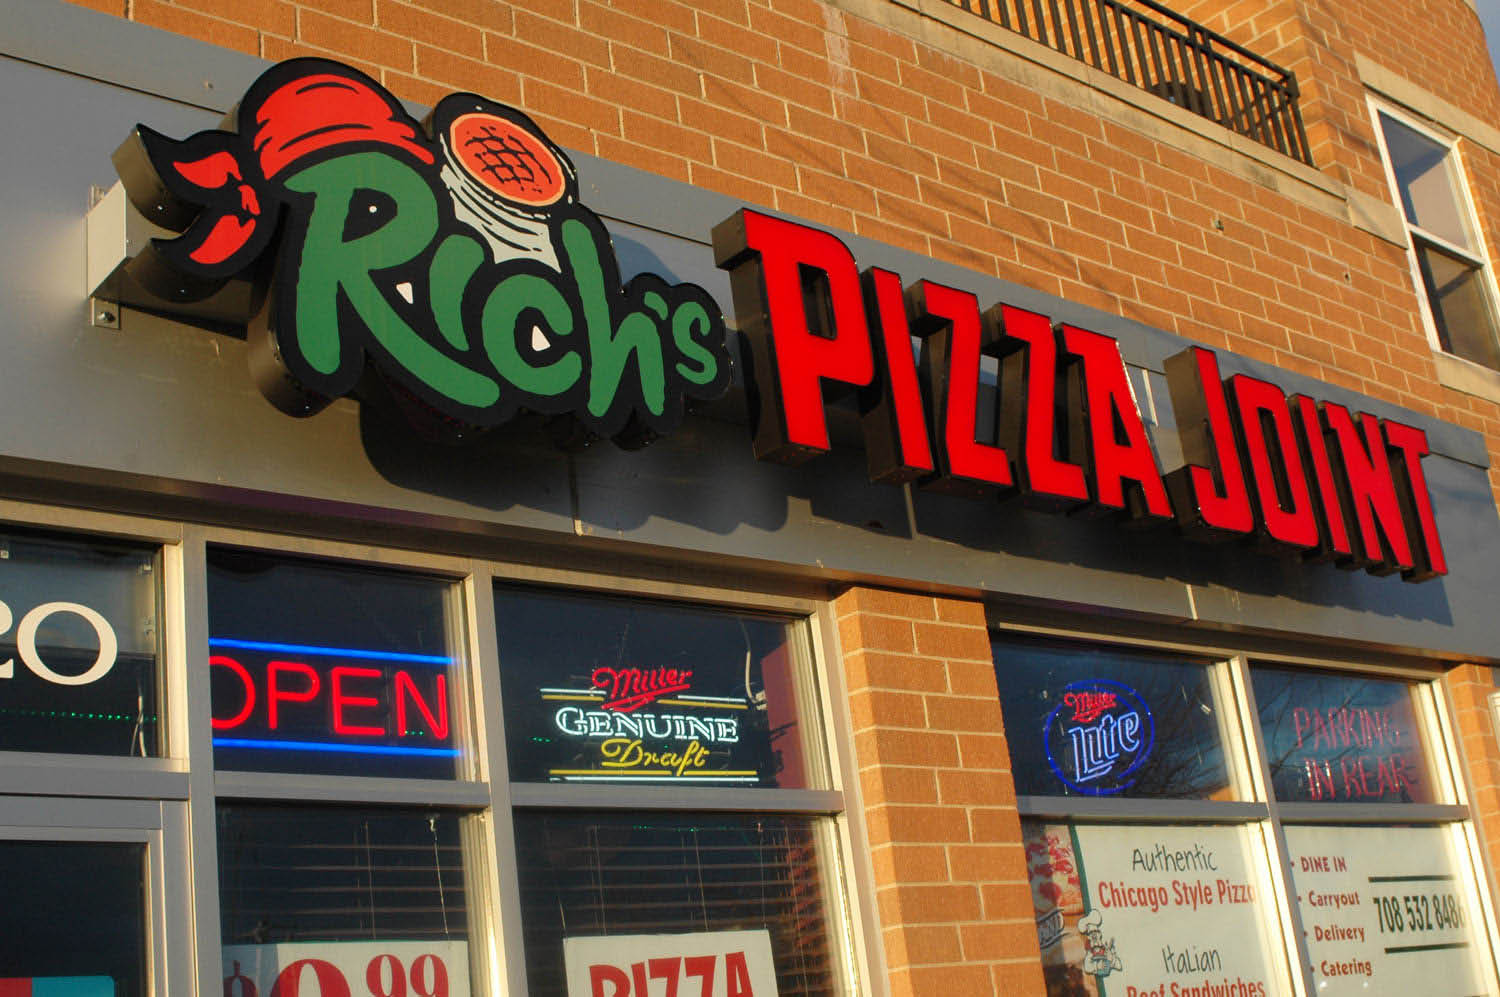 Exterior photo of  Rich's Pizza Joint located in Tinley Park..